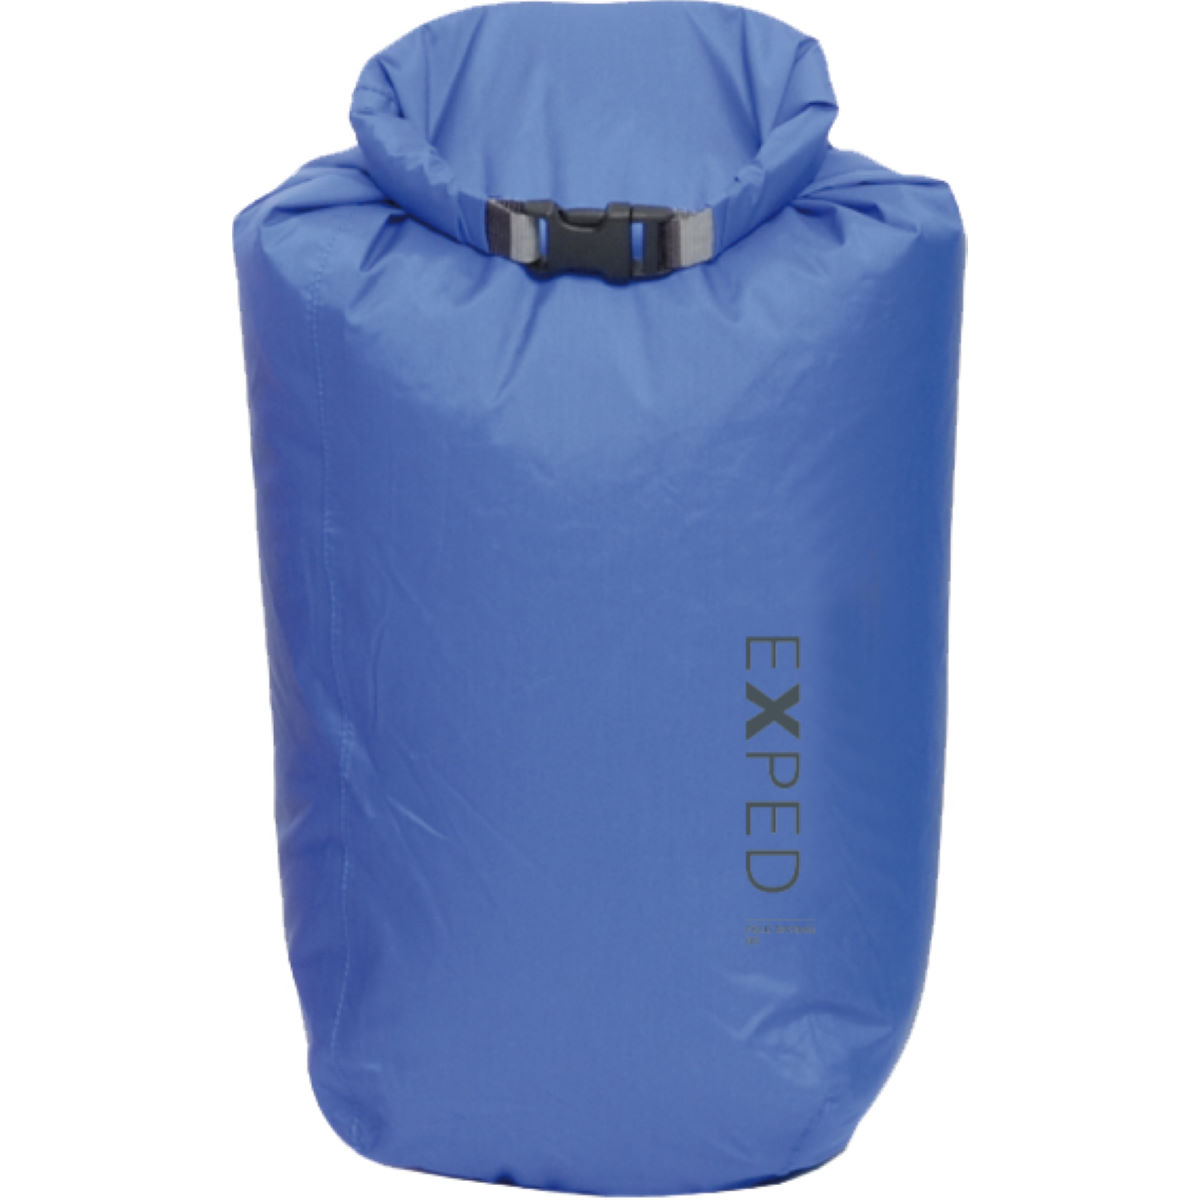 Exped Fold-Drybag BS L (13L) - Bolsas estancas